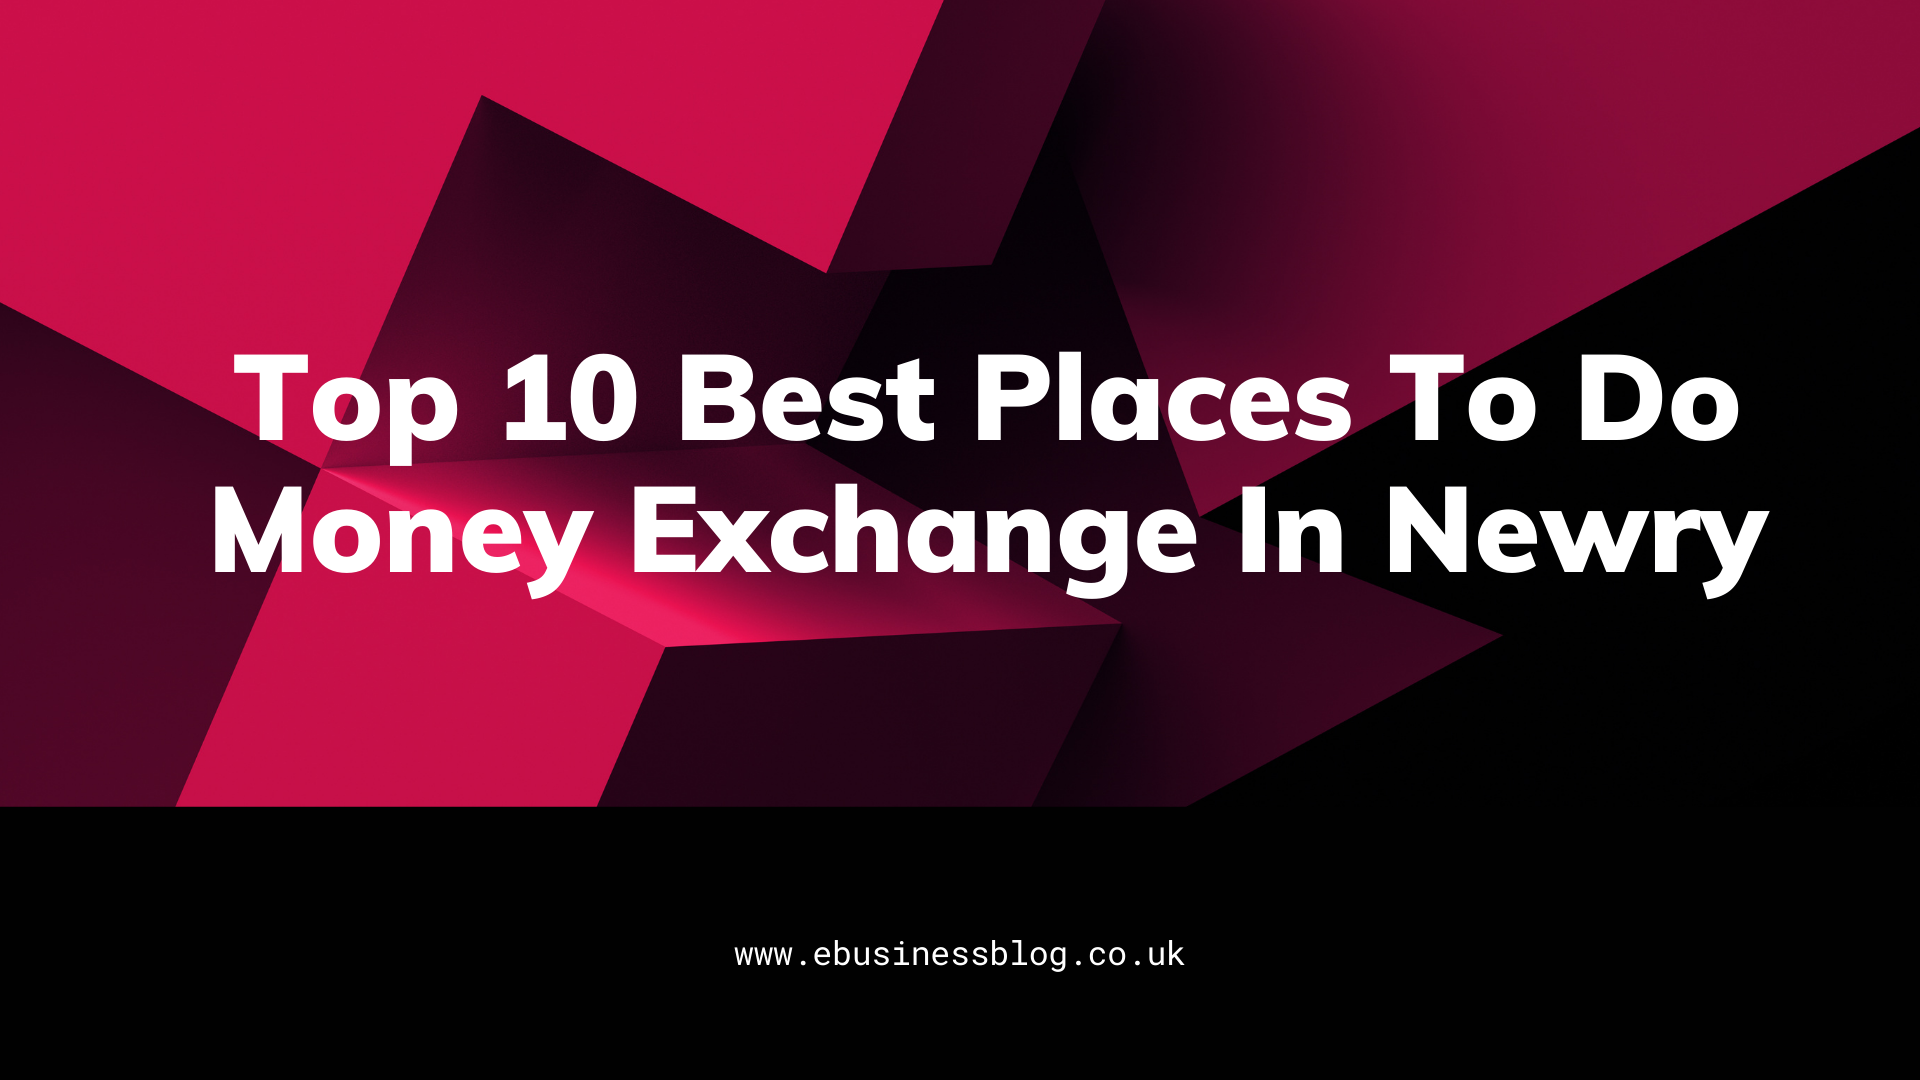 Top 10 best places to do money exchange in Newry